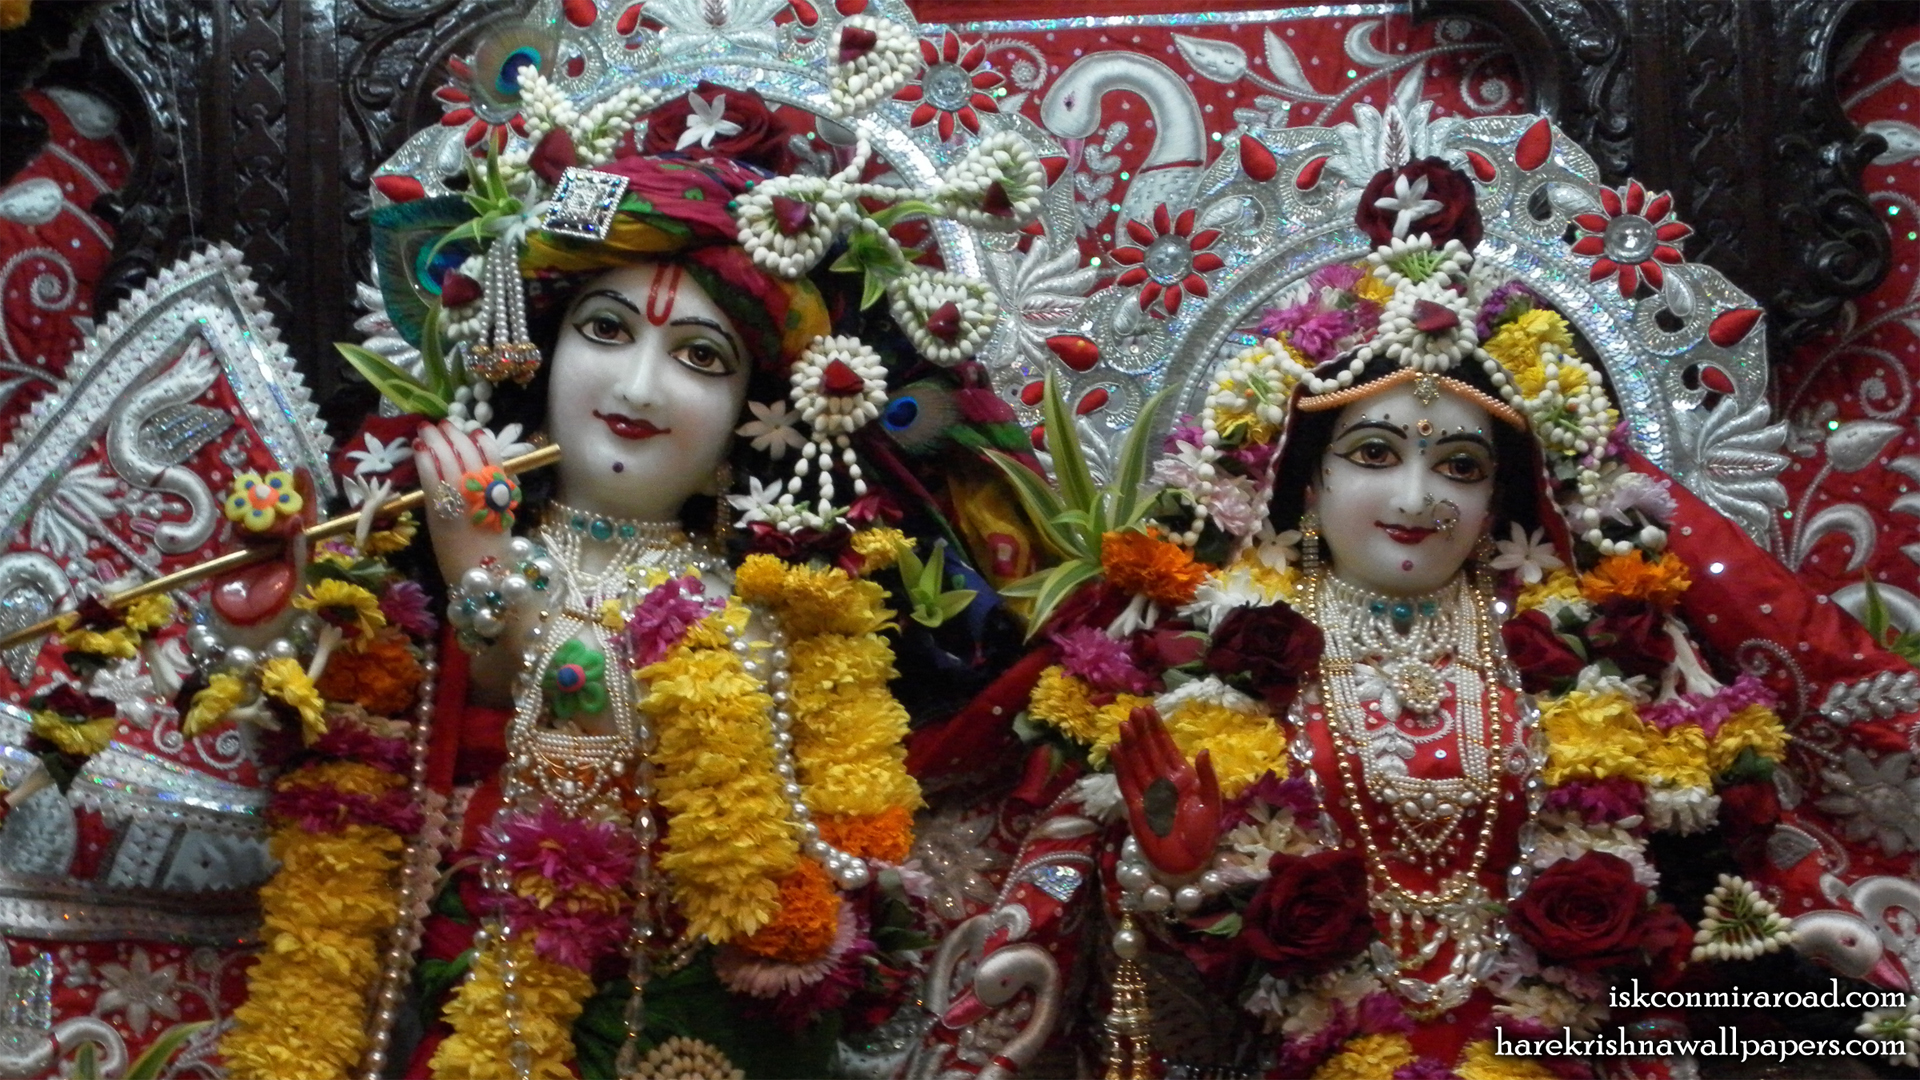 Sri Sri Radha Giridhari Close up Wallpaper (021) Size 1920x1080 Download